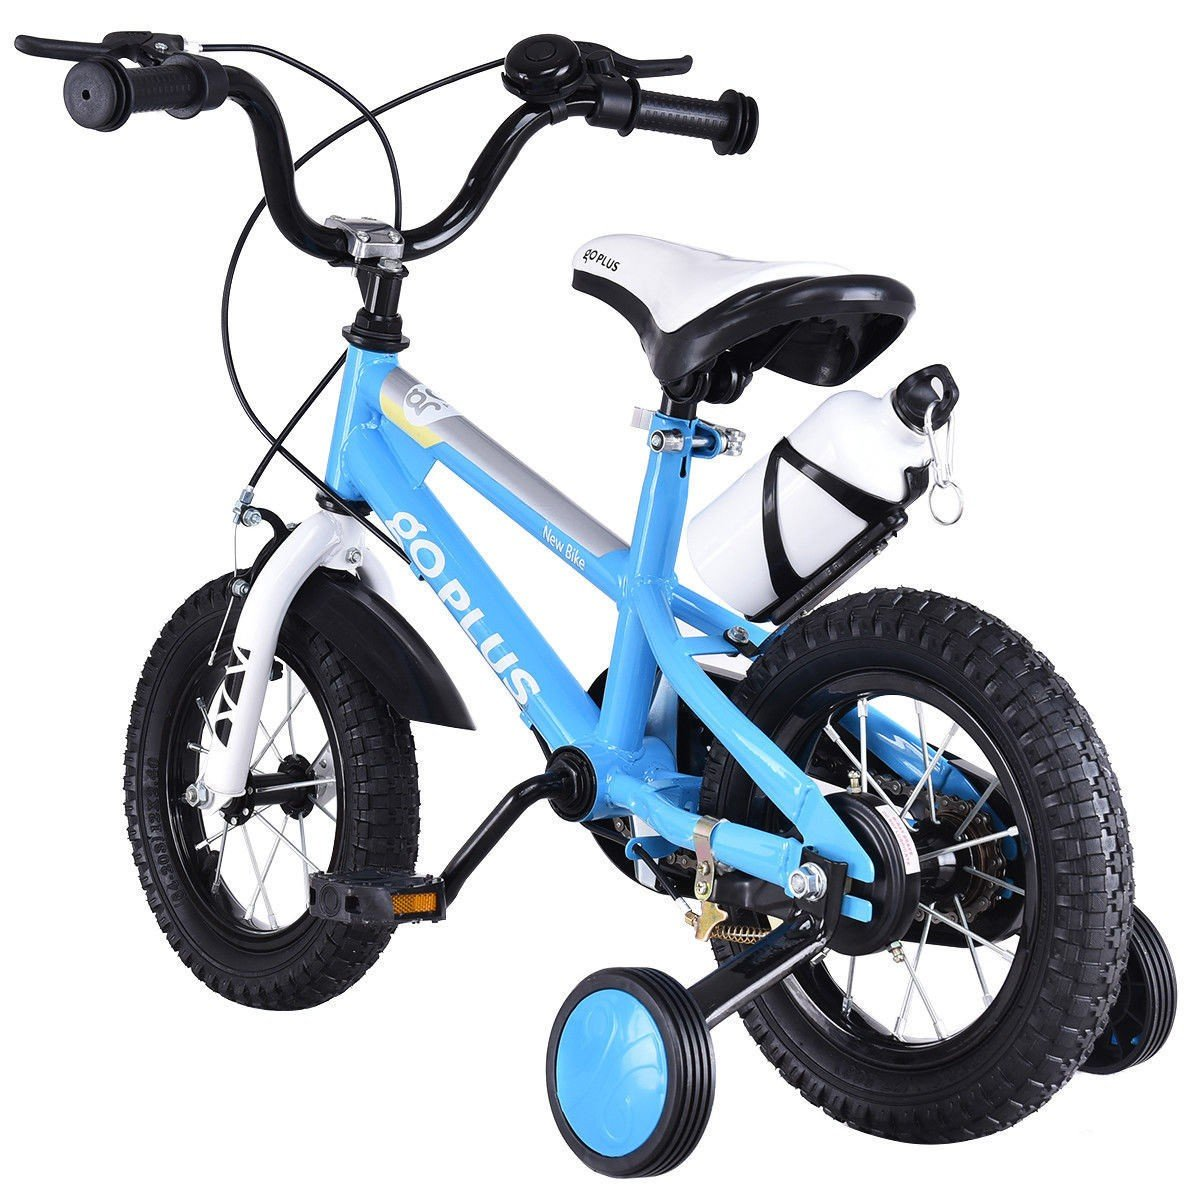 MD Group Kids Bicycle w/ Training Wheels Freestyle 16'' Blue Adjustable Children Xmas Gift by MD Group (Image #3)